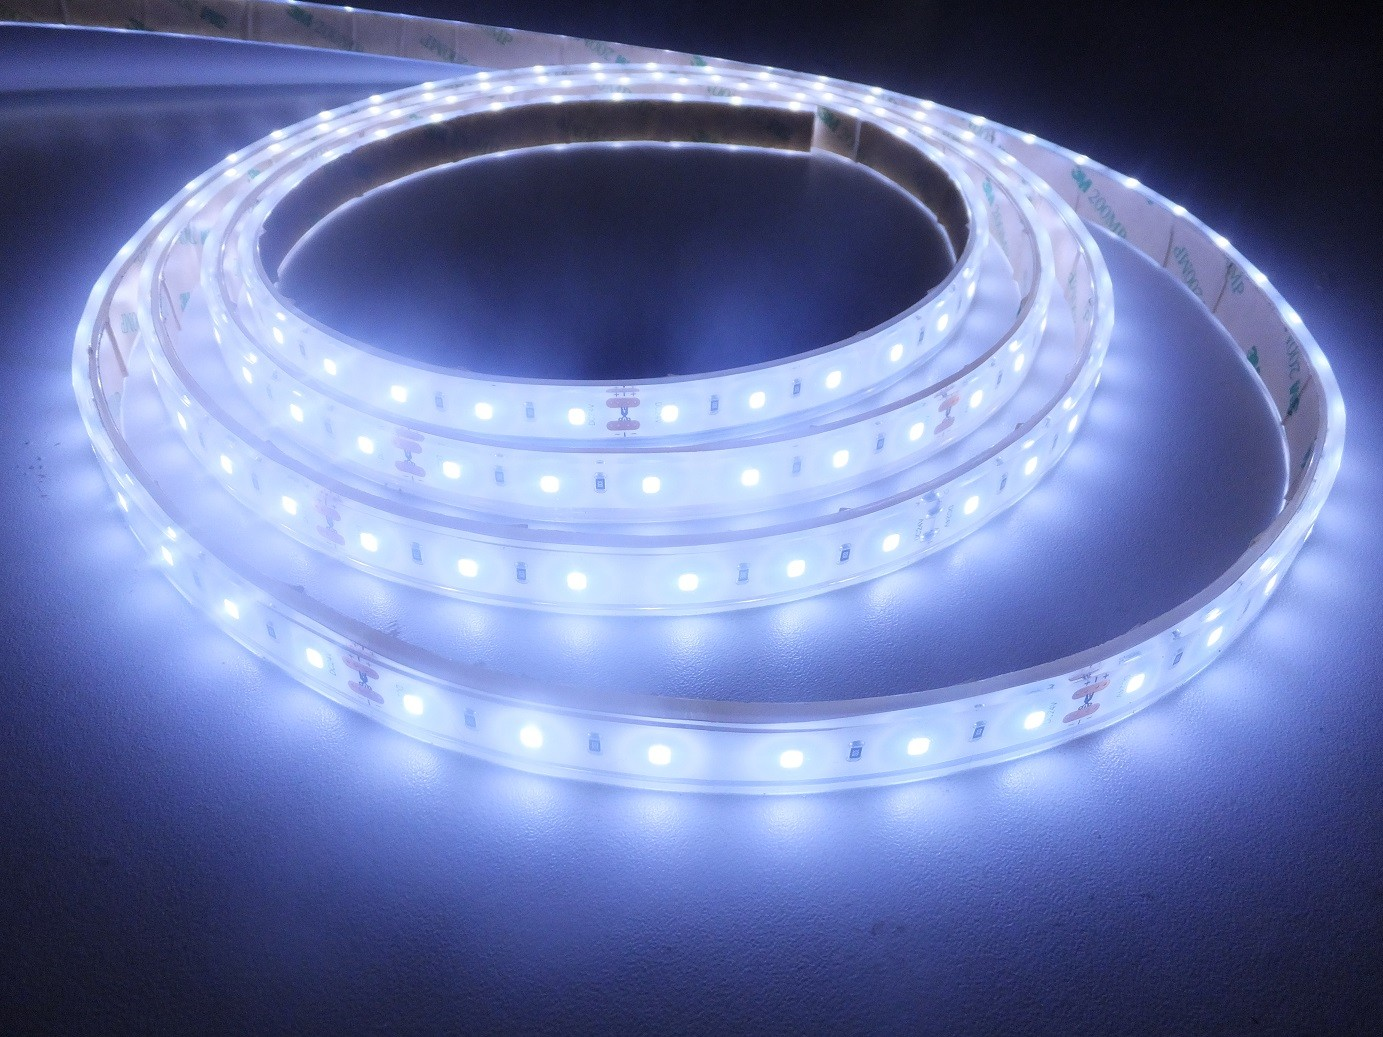 Comment installer un ruban led - Ruban led pas cher ...